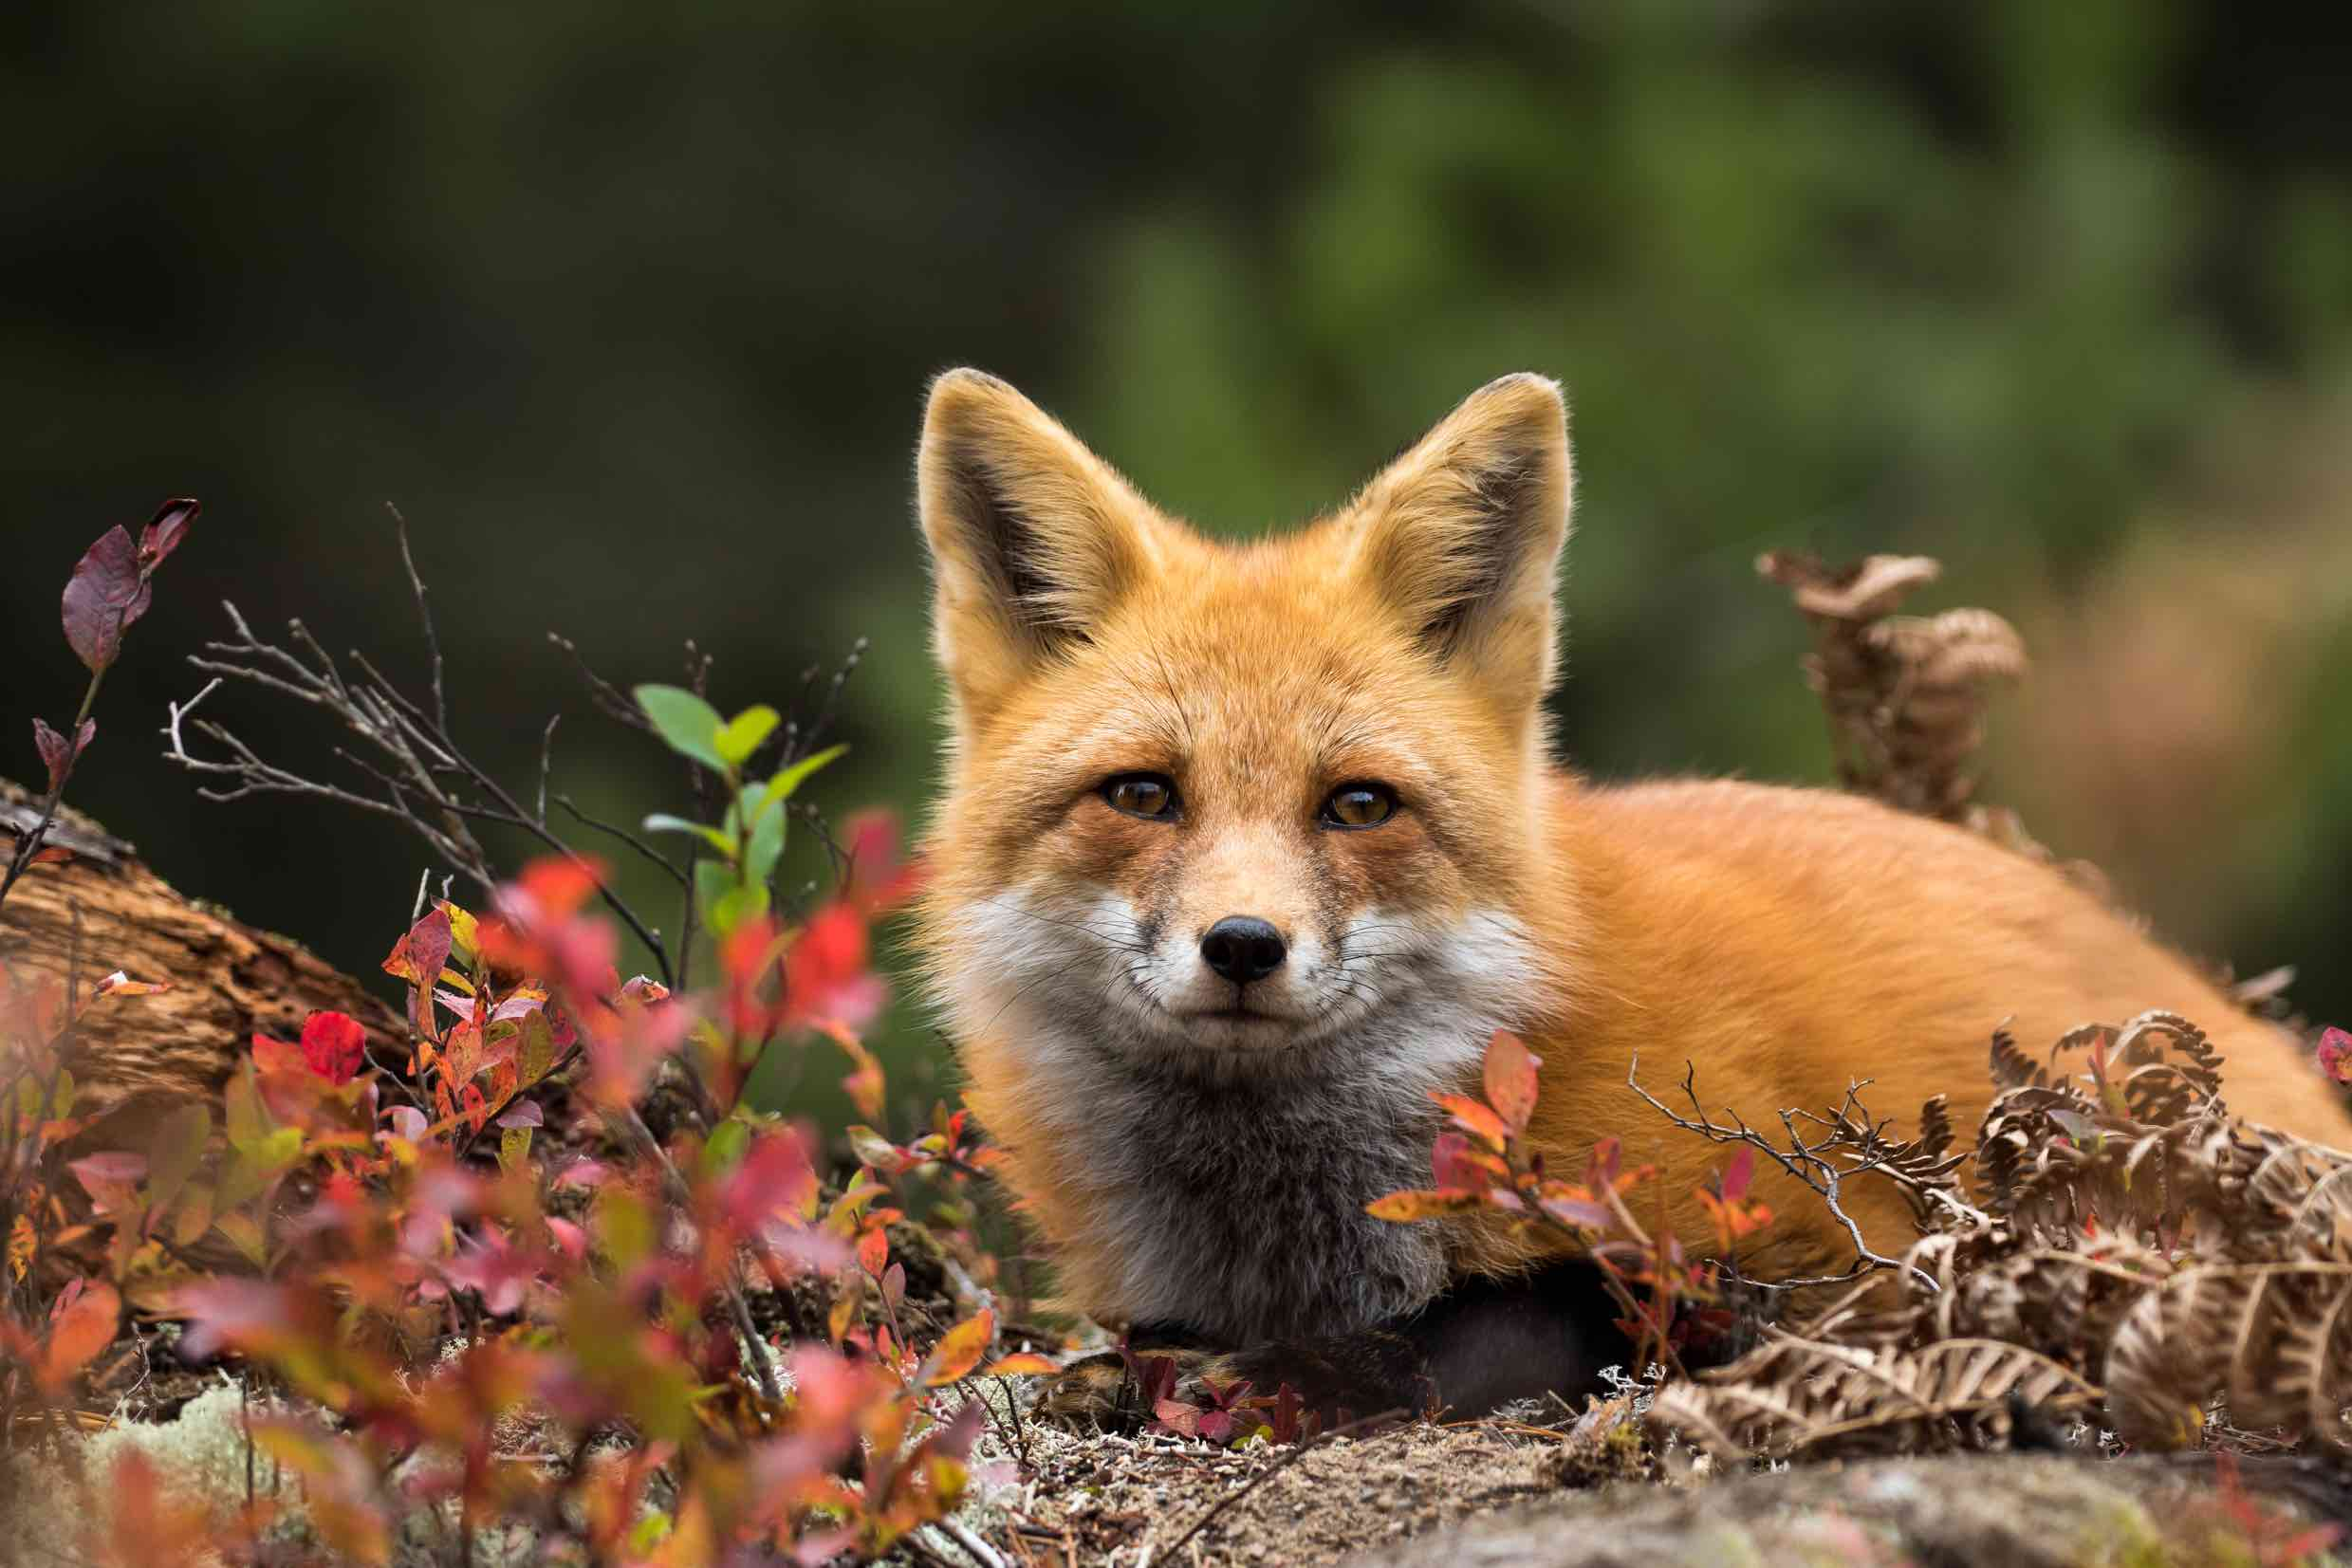 Image of a red fox in a forest looking at the camera